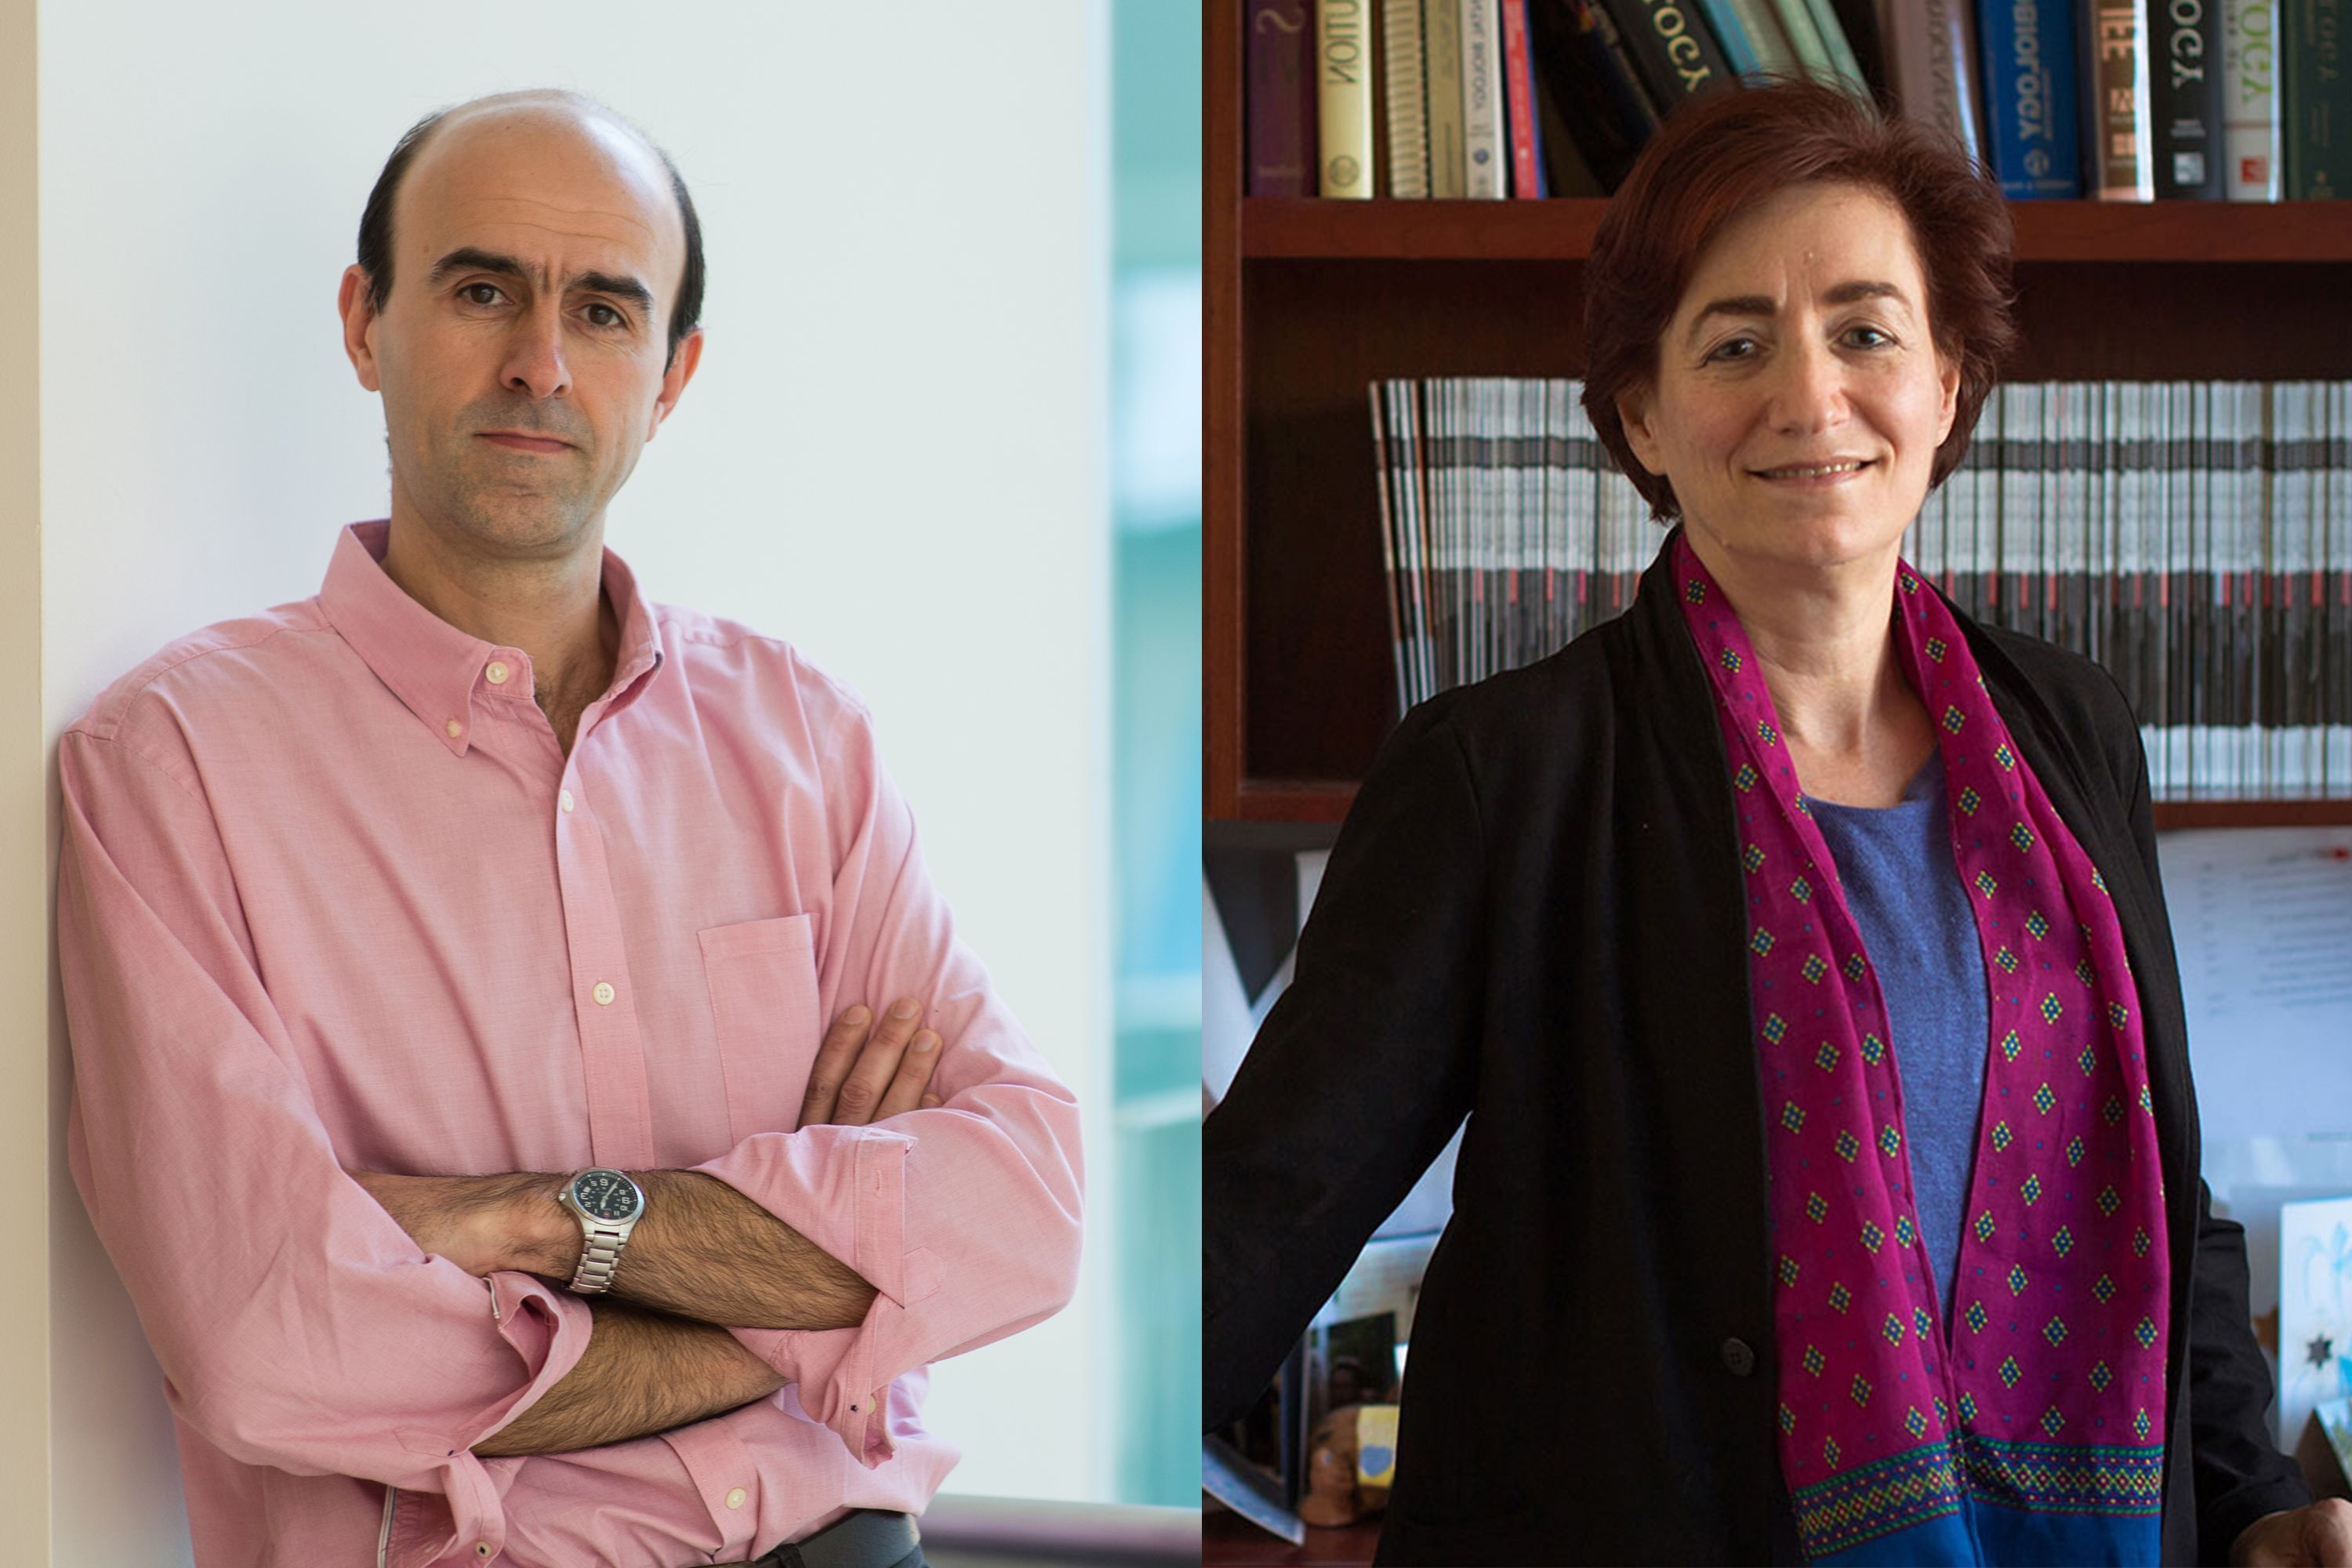 Jazayeri and Sive awarded 2019 School of Science teaching prizes